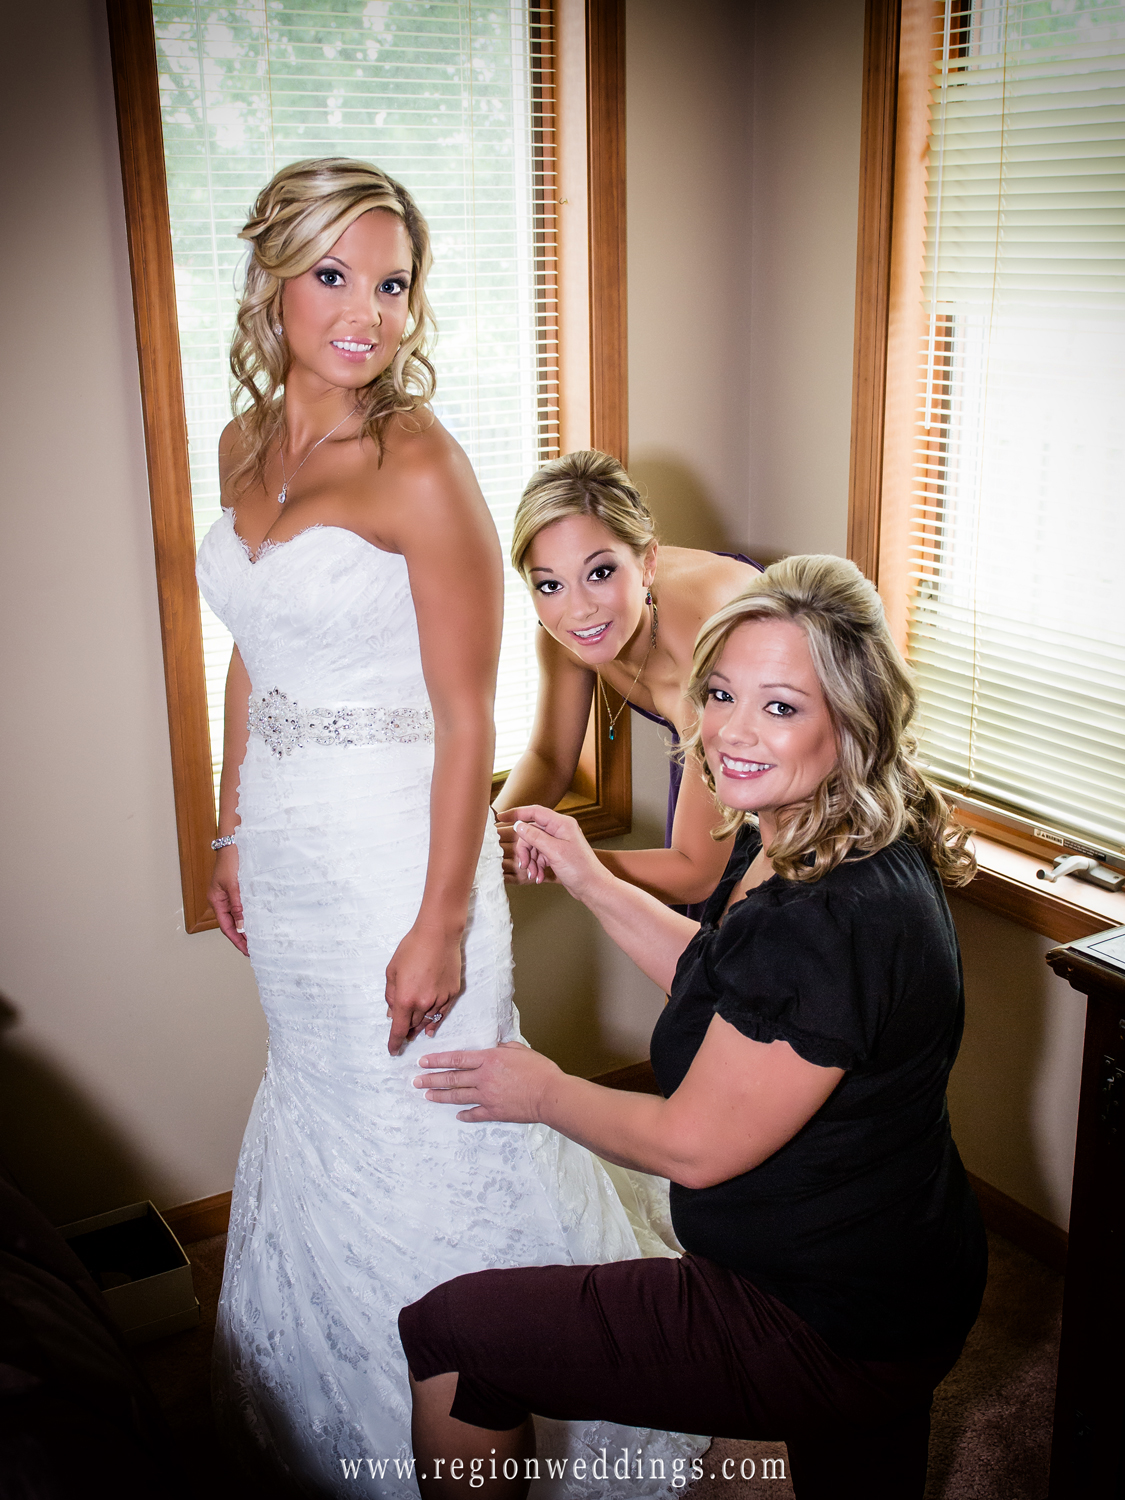 The bride's mom and sister help her into her wedding dress.